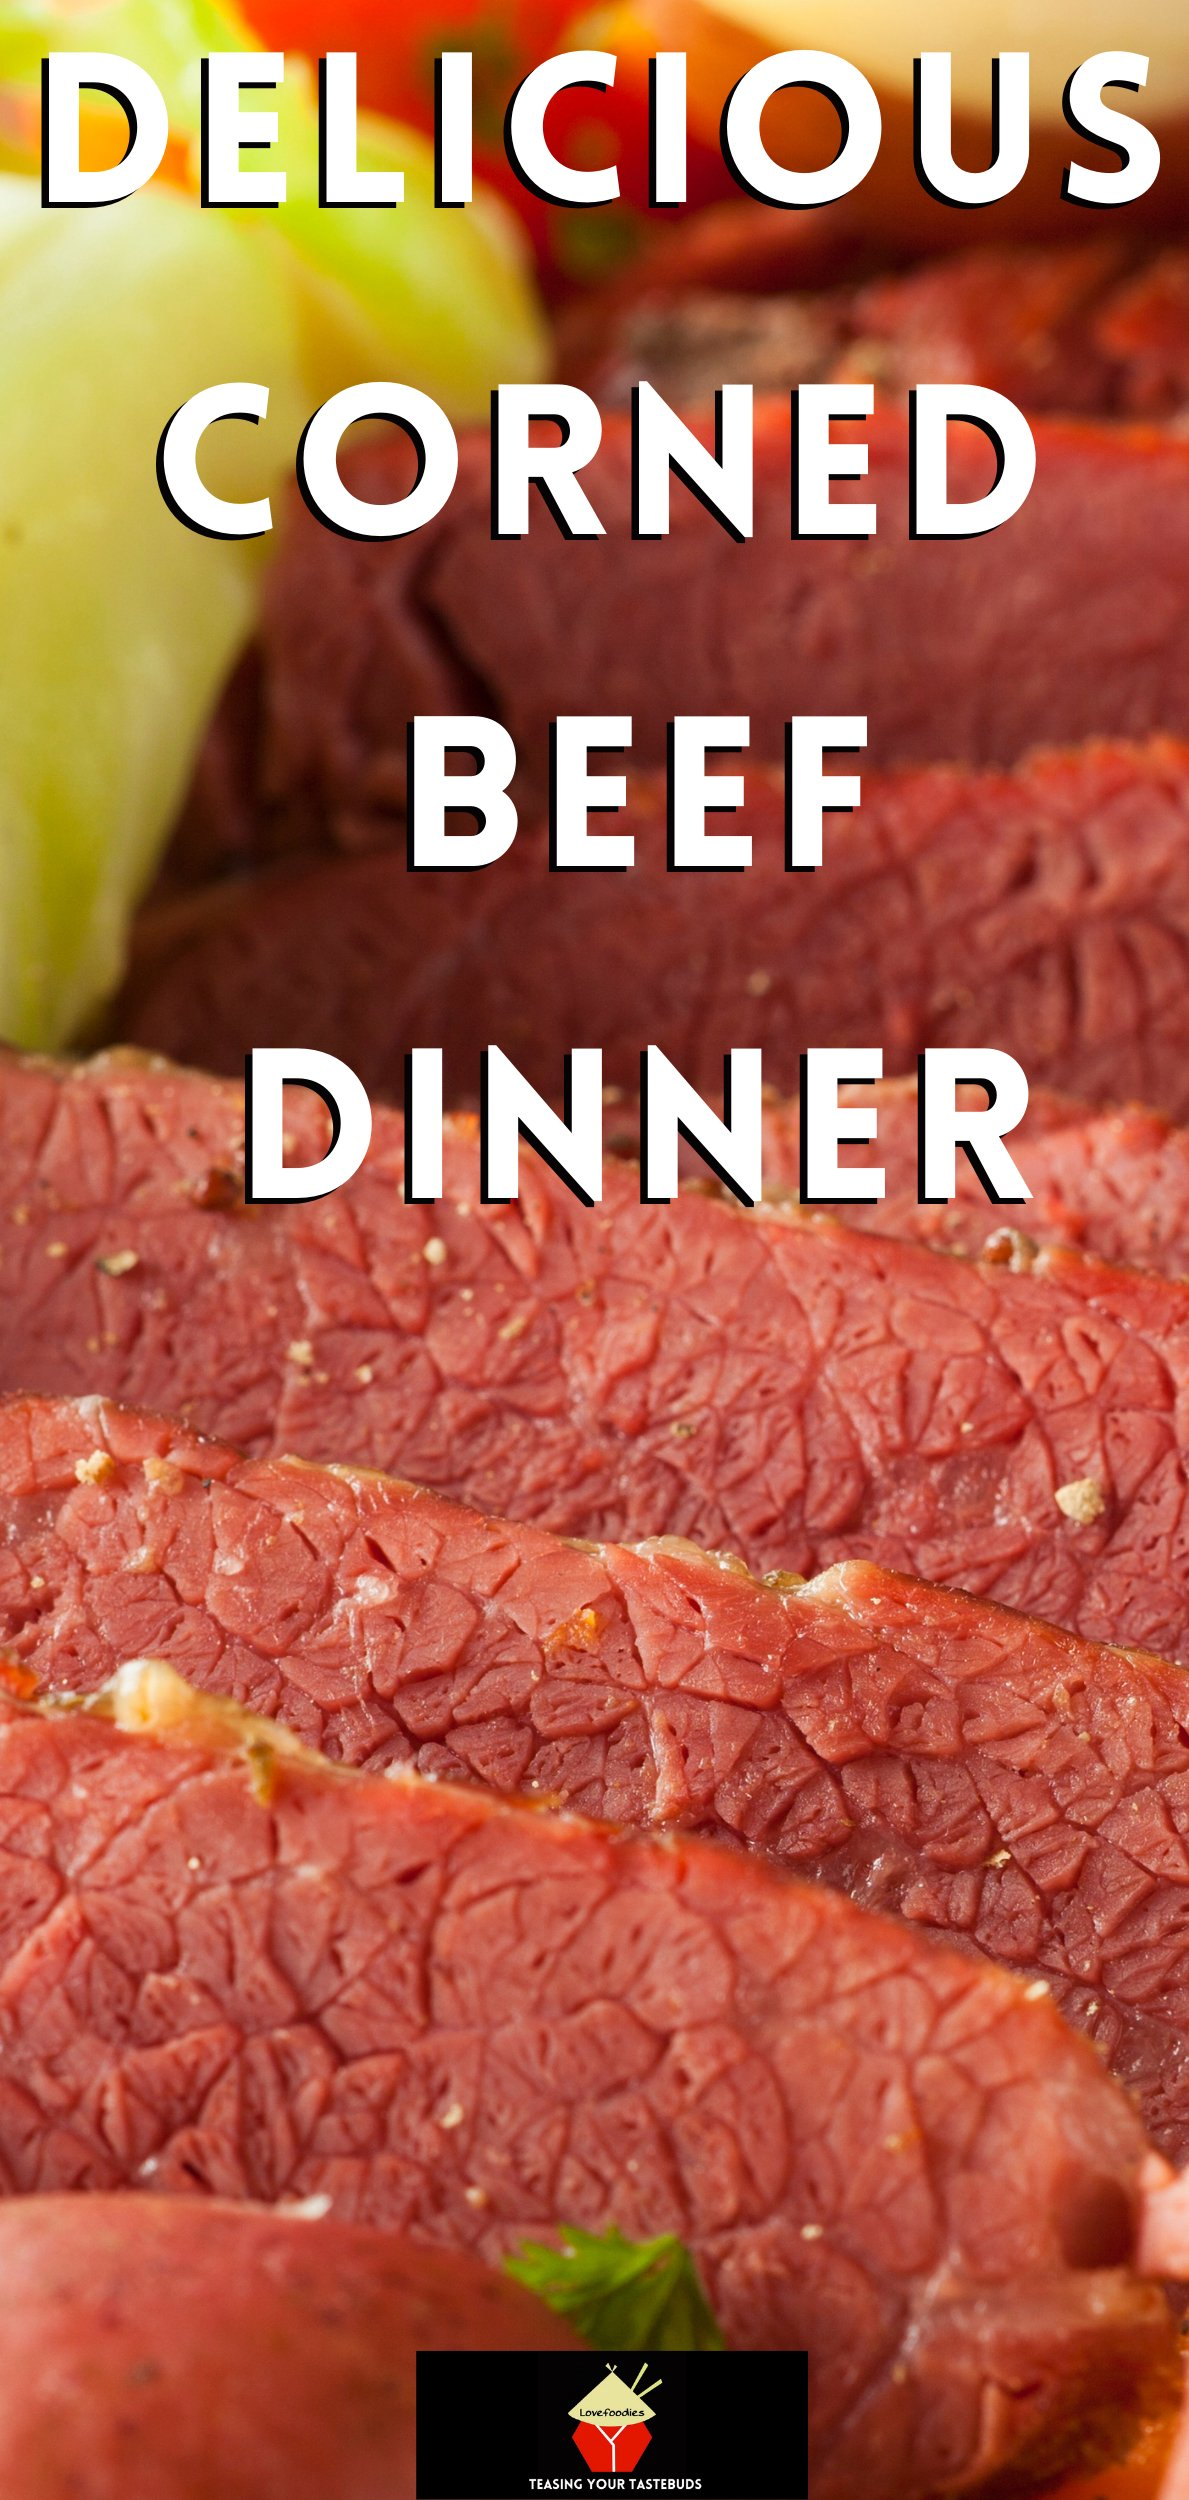 Delicious Corned Beef Dinner